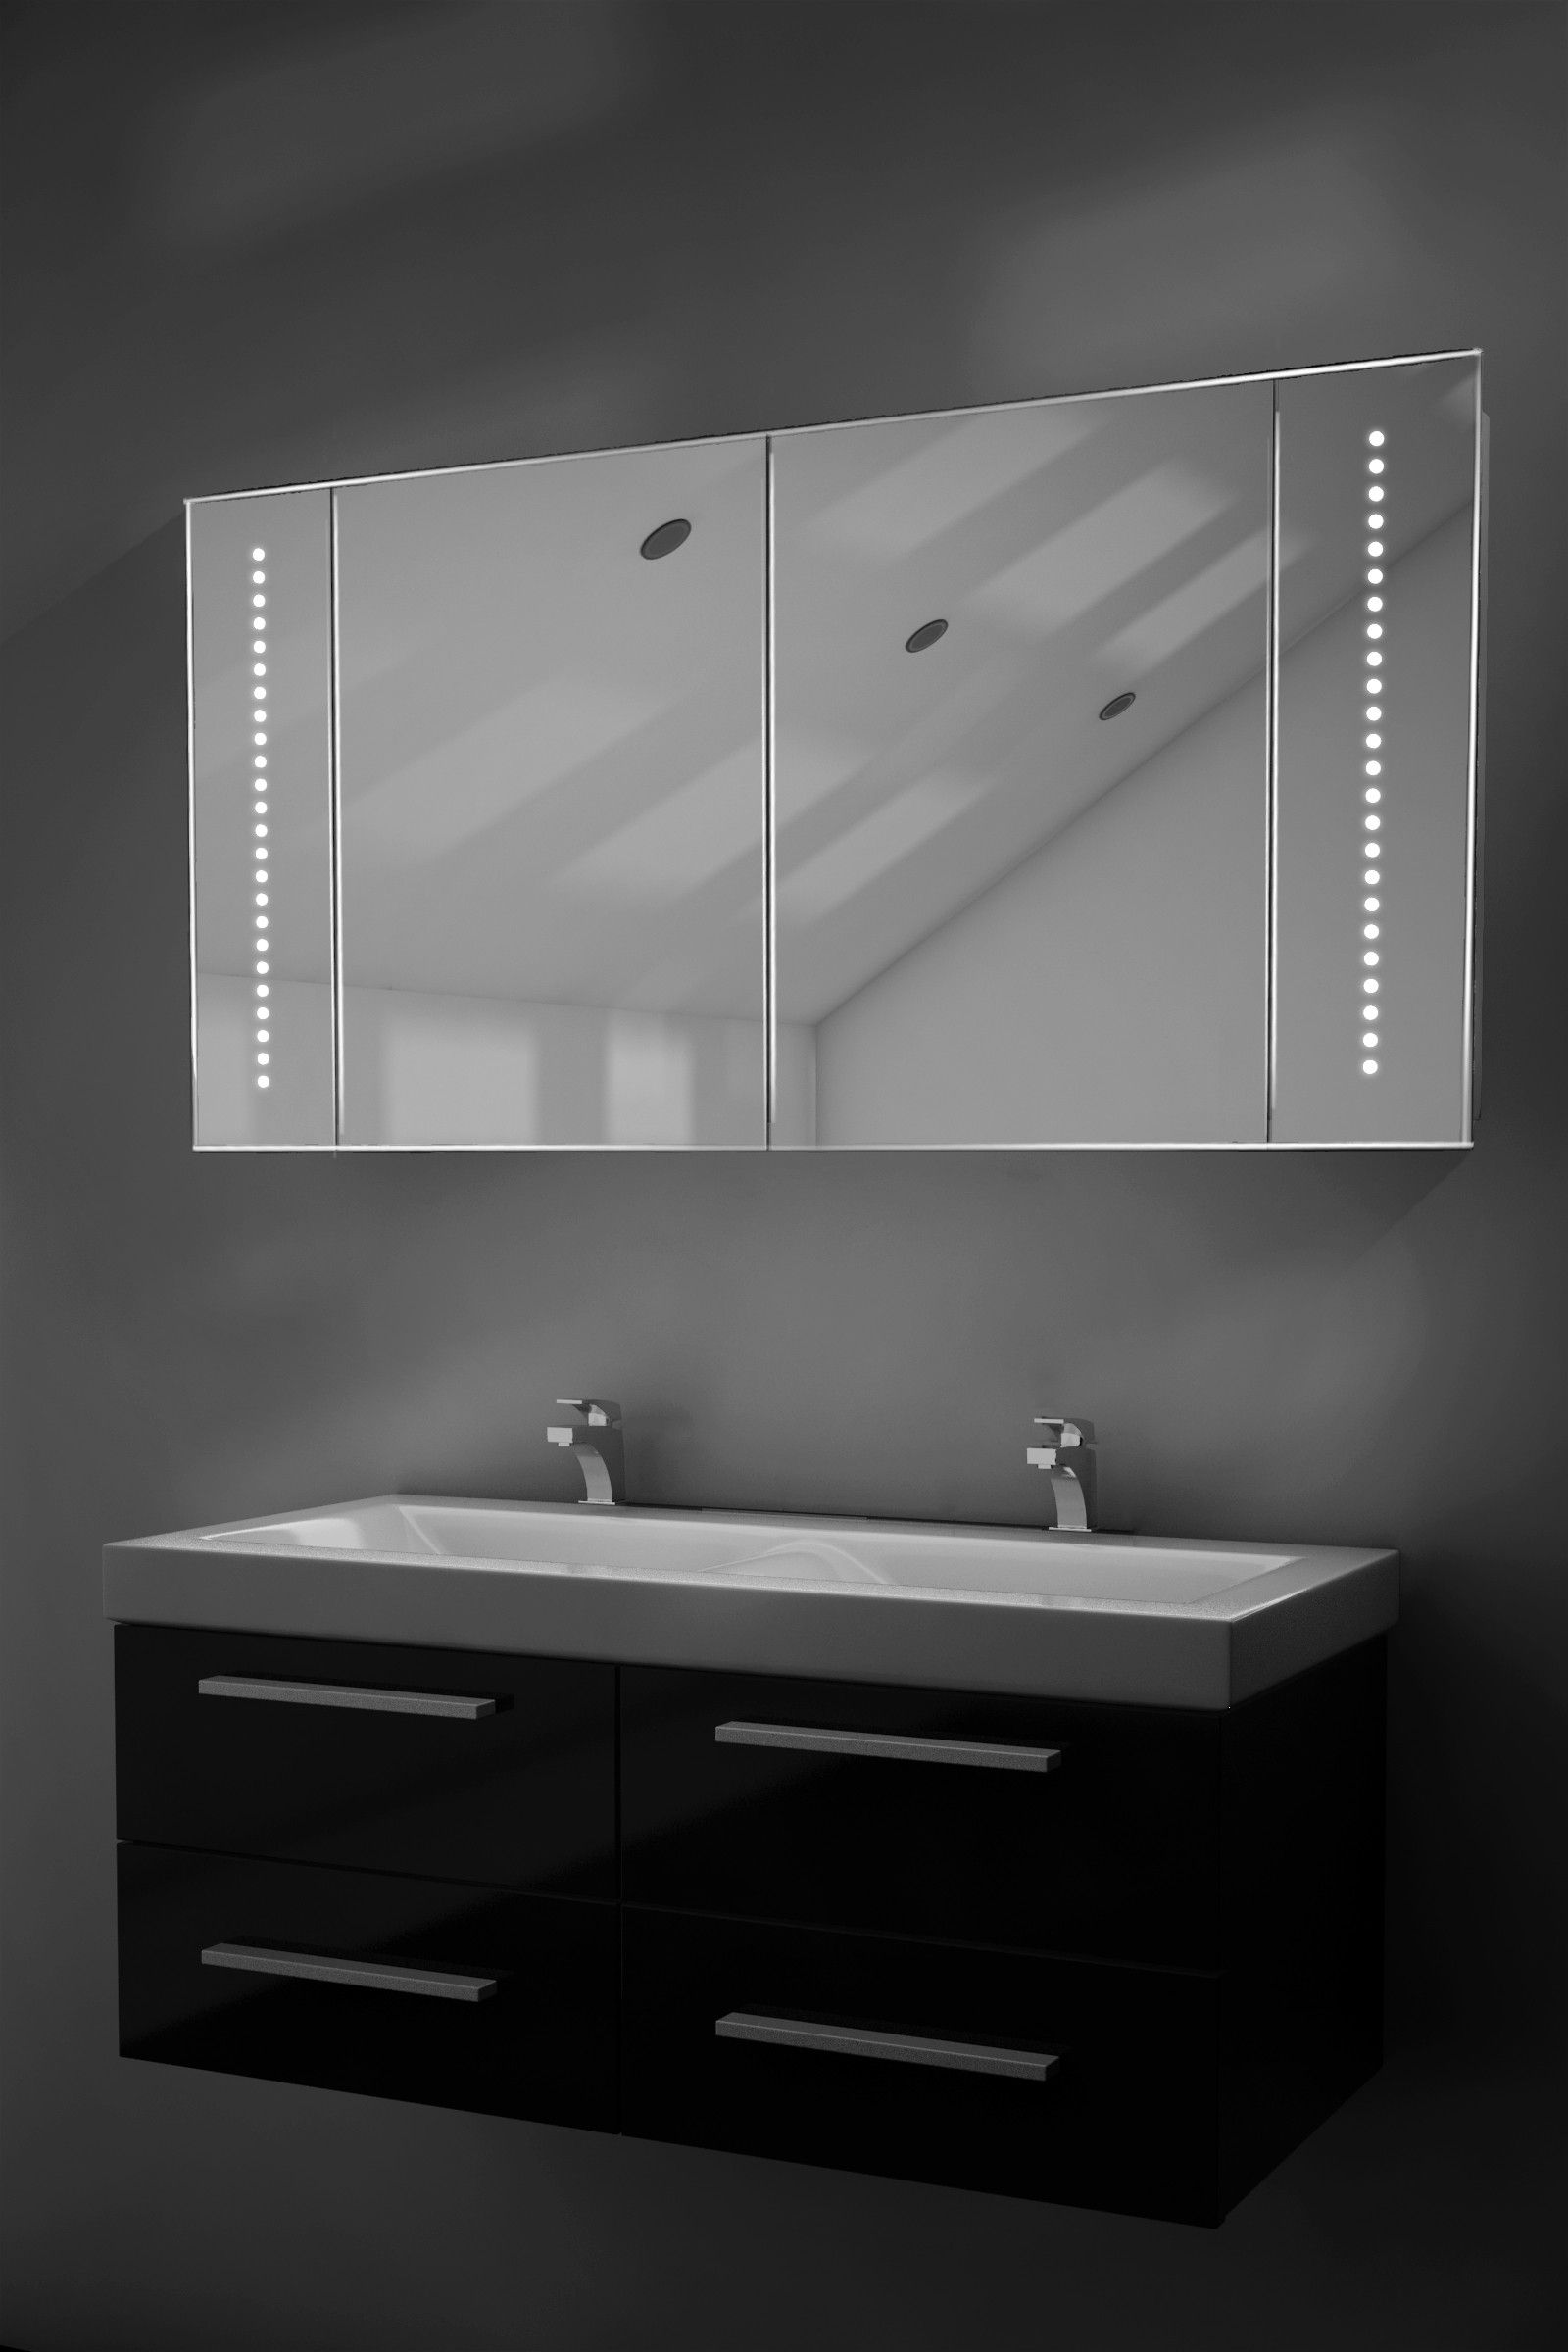 Illuminated Bathroom Cabinets >> Led Illuminated Bathroom Cabinet Mirror Cabinets Modern